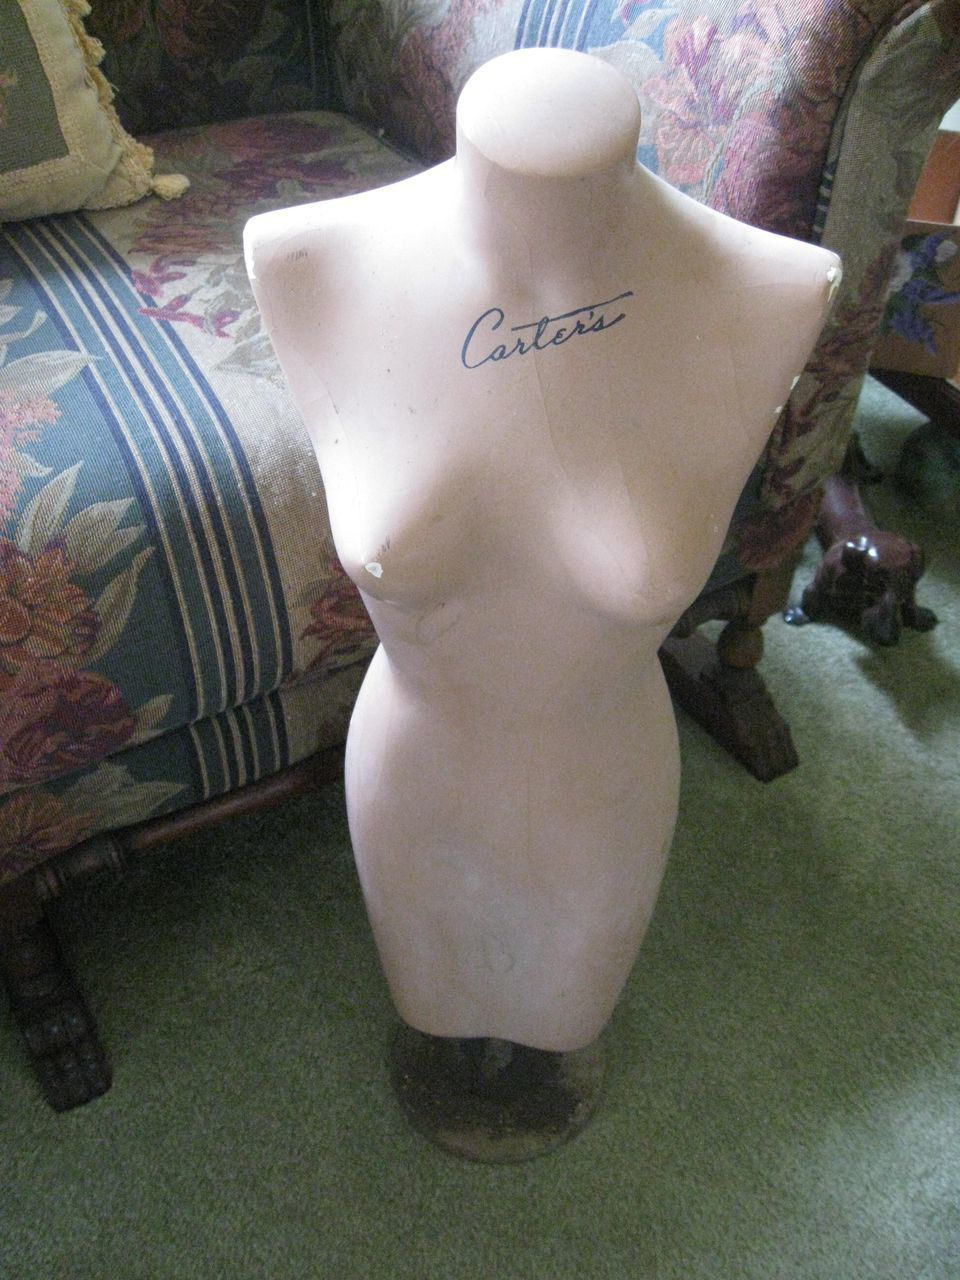 1930s -1940s Dress Form, Counter Top Display, Plaster Mannequin, Carters Lingerie Advertisement